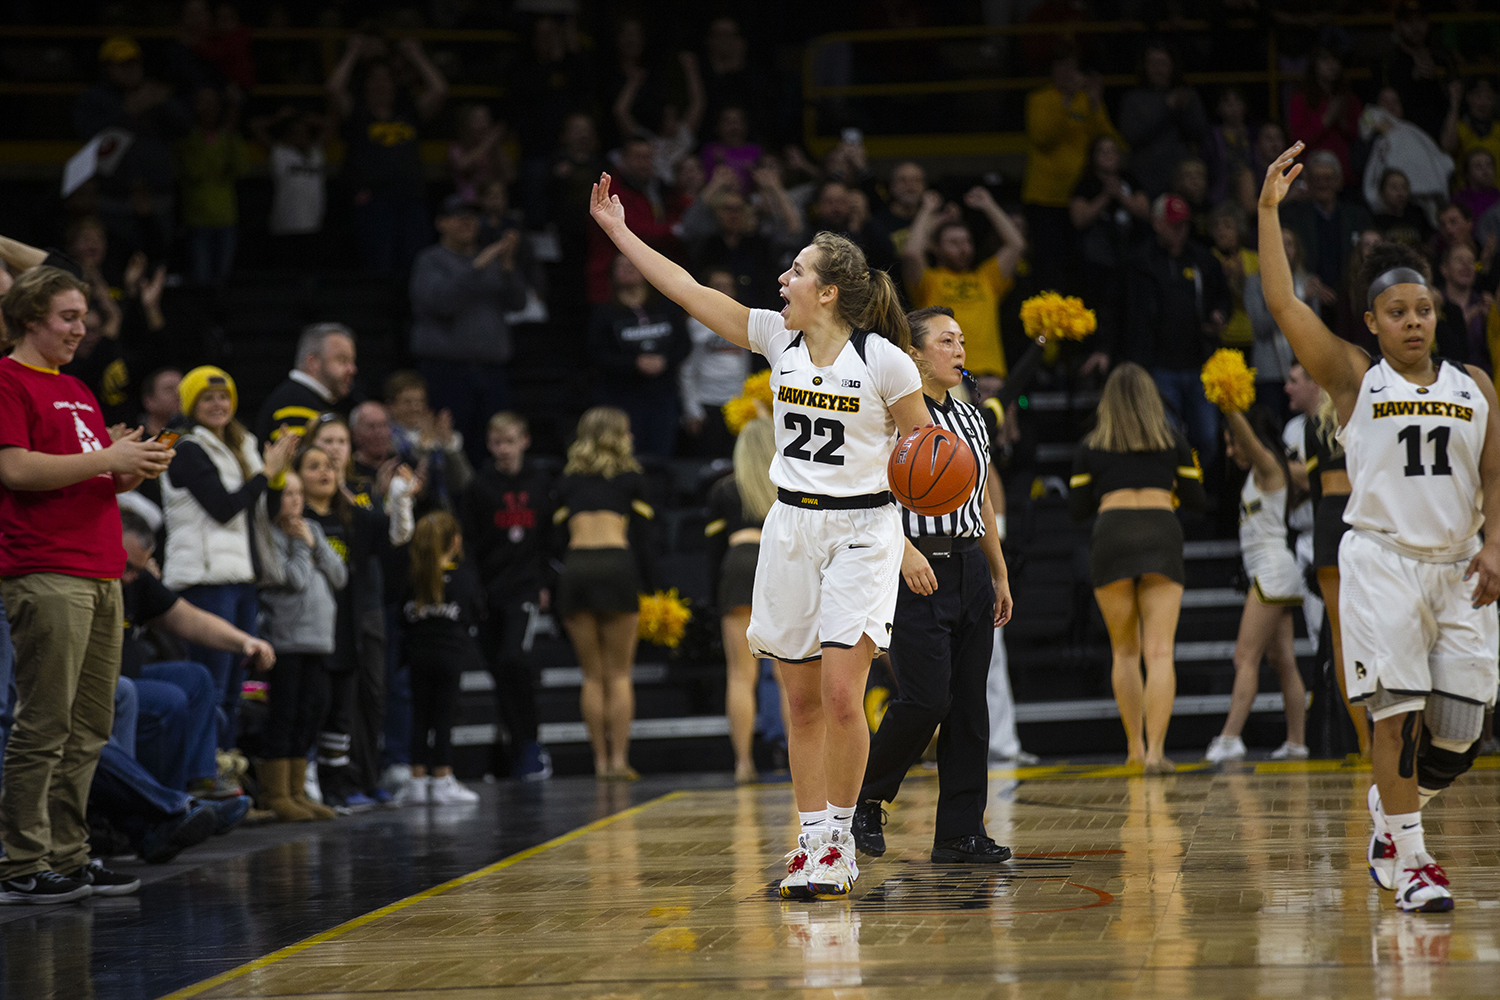 Iowa guard Kathleen Doyle gestures at the crowd to get loud during the Iowa/Purdue women's basketball game at Carver-Hawkeye Arena on Sunday, January 27, 2019. The Hawkeyes defeated the Boilermakers, 72-58. (Lily Smith/The Daily Iowan)